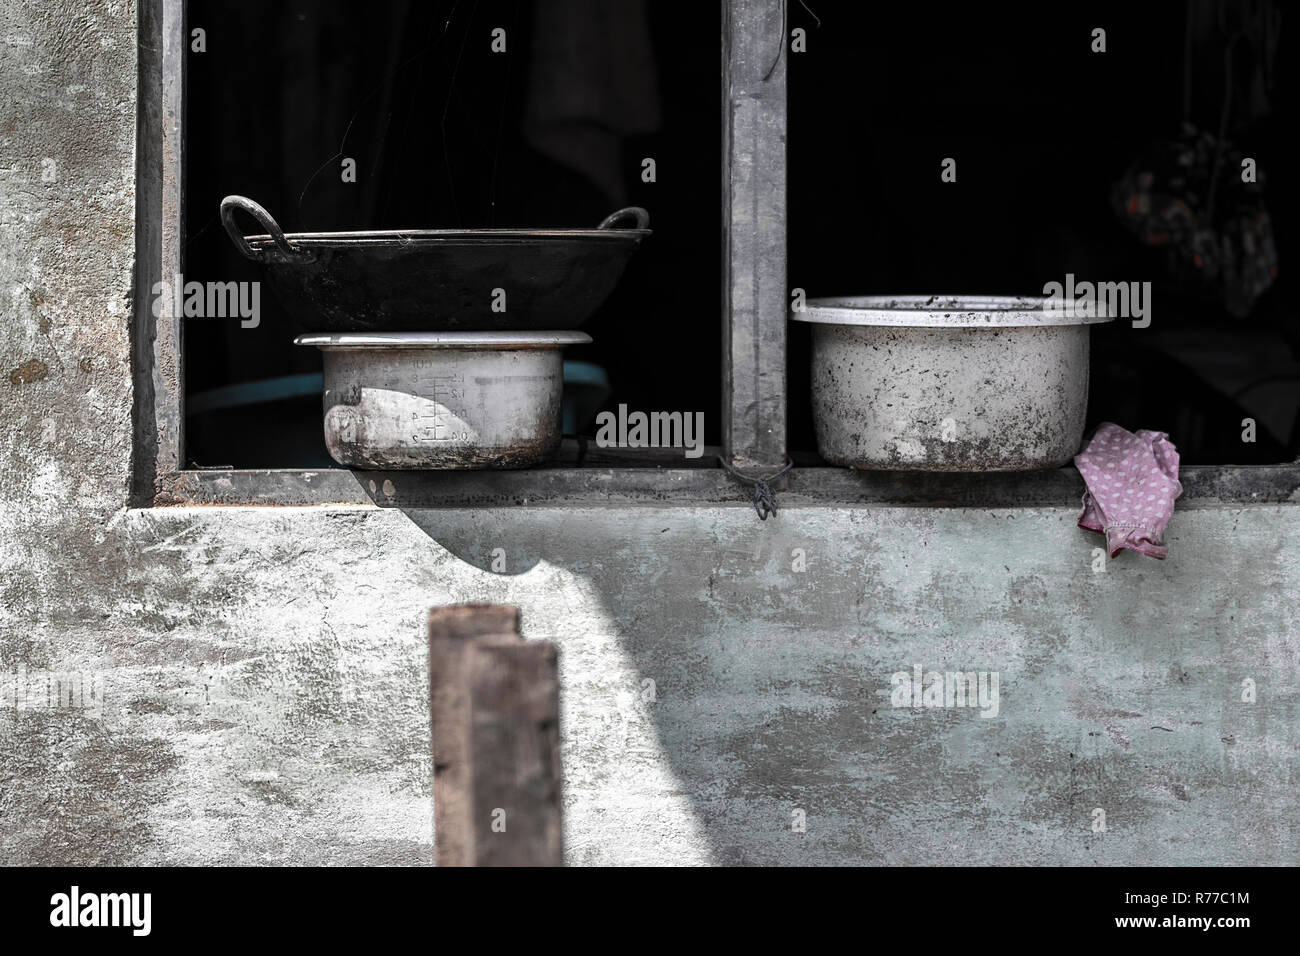 kitchen staff over the window in the myanmar street - Stock Image